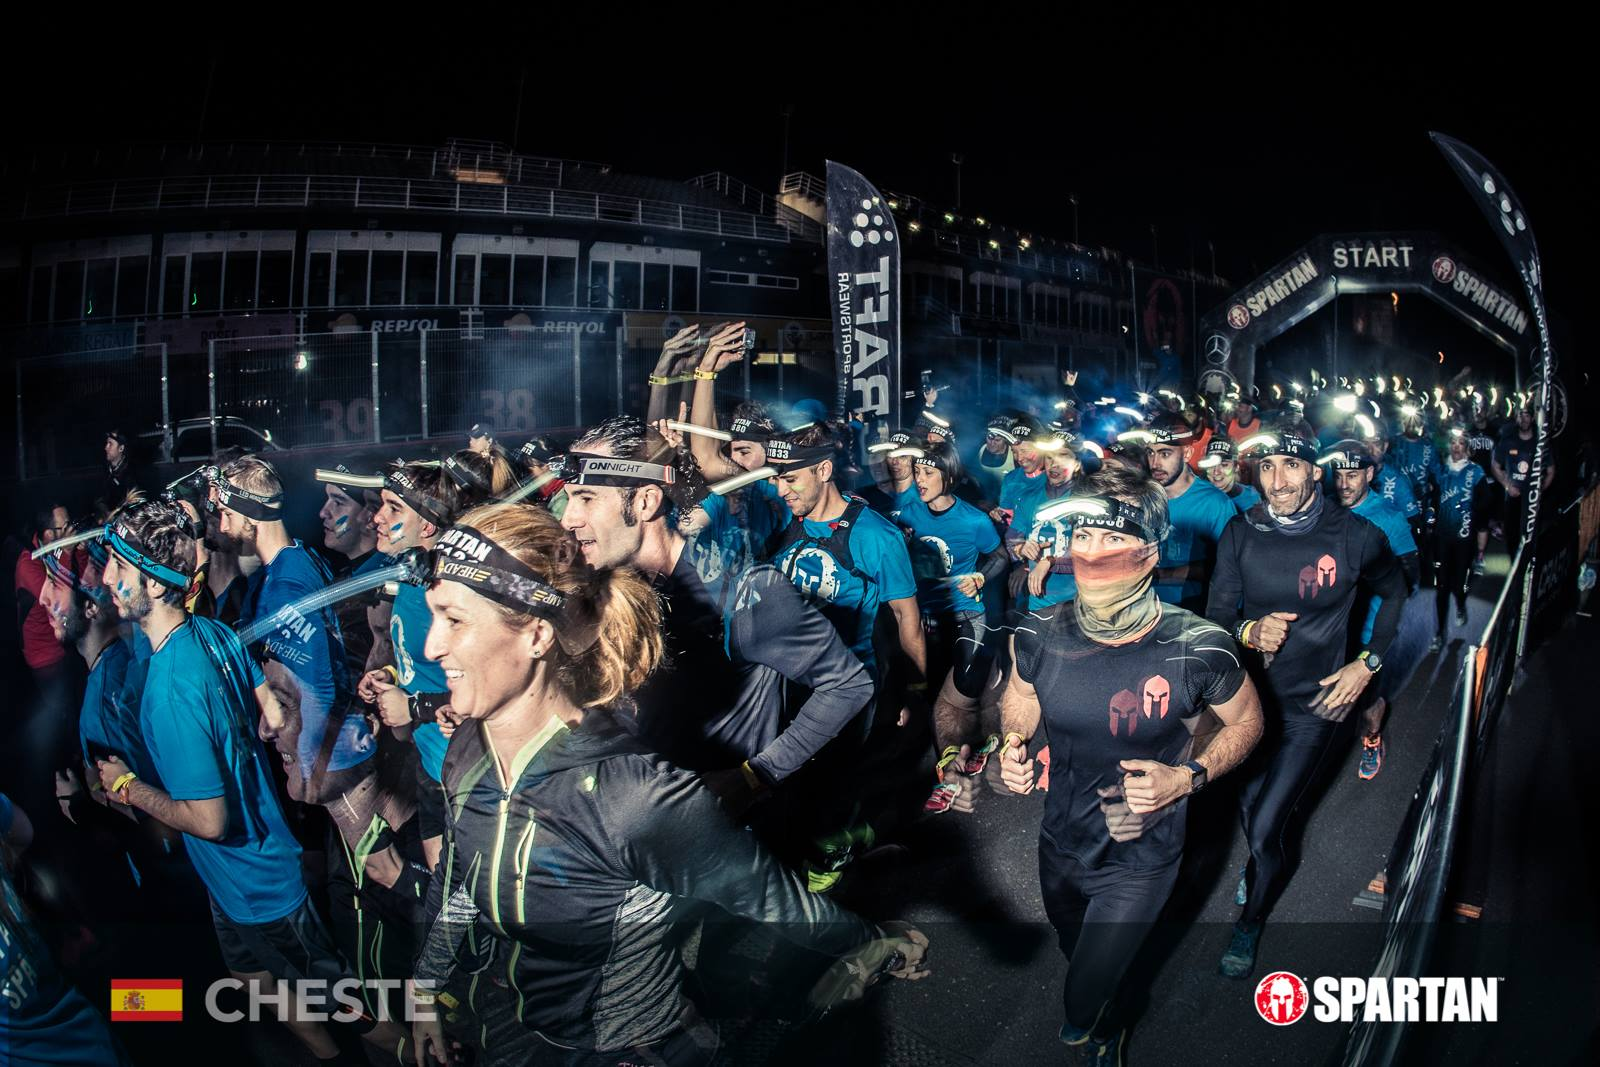 Racers leaving start line in night sprint